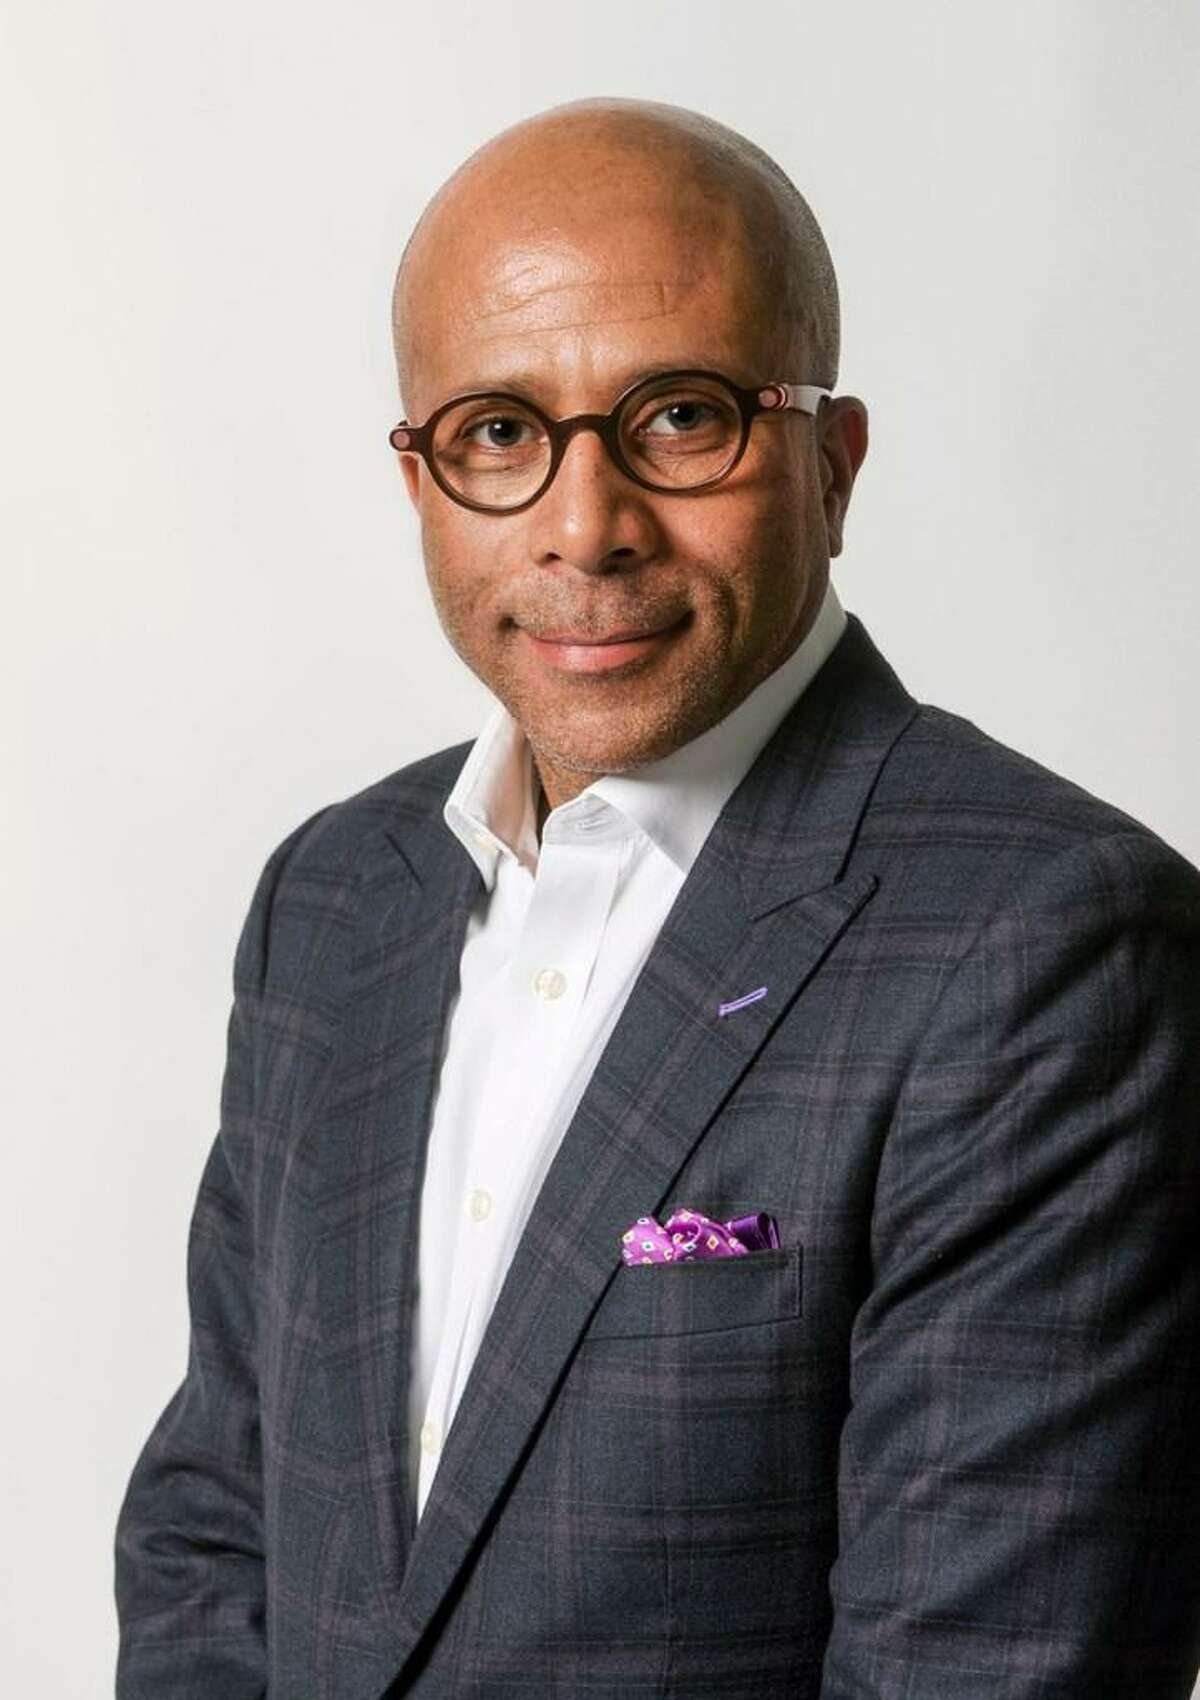 """Anthony Pinn is the founding director of Rice University's Center for African and African American Studies. The center, launched Oct. 16, 2019, will provide be a hub for conversations on race, racism, the various histories and identities of the diaspora, and the """"complexity of Africa's past, present and future,"""" according to university officials."""